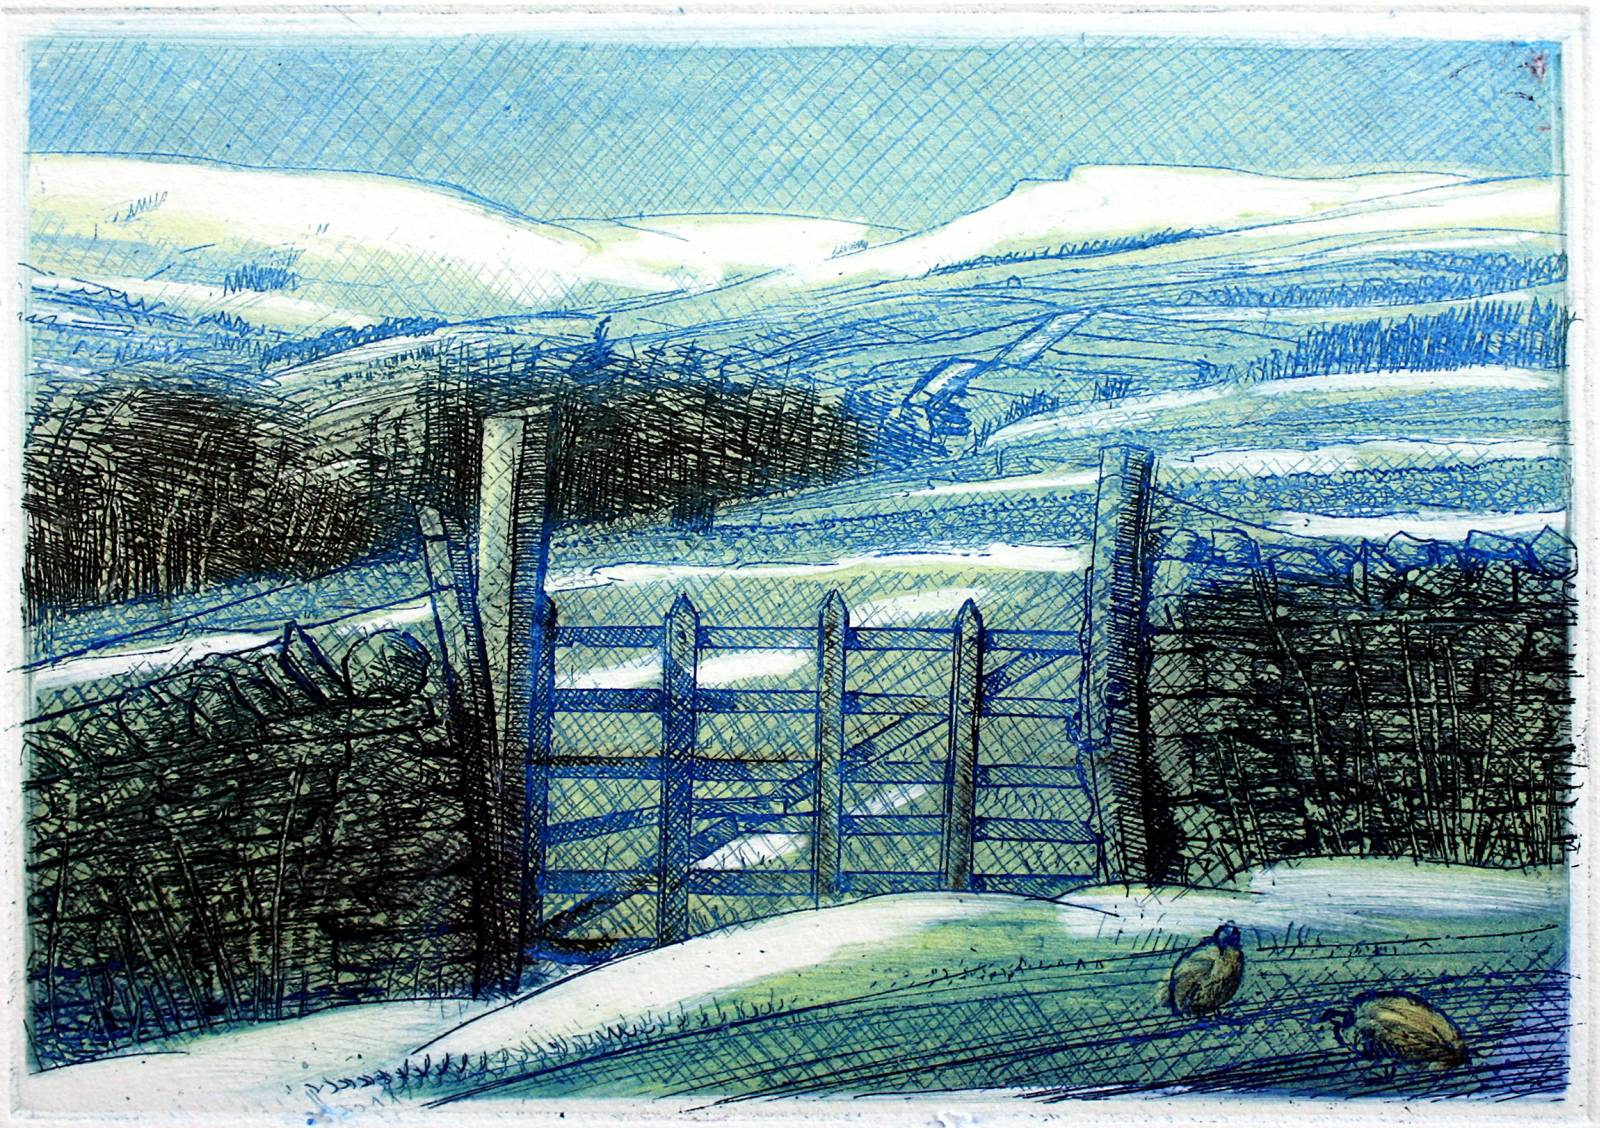 'TOWARDS HAWES, WENSLEYDALE' - sun and snow